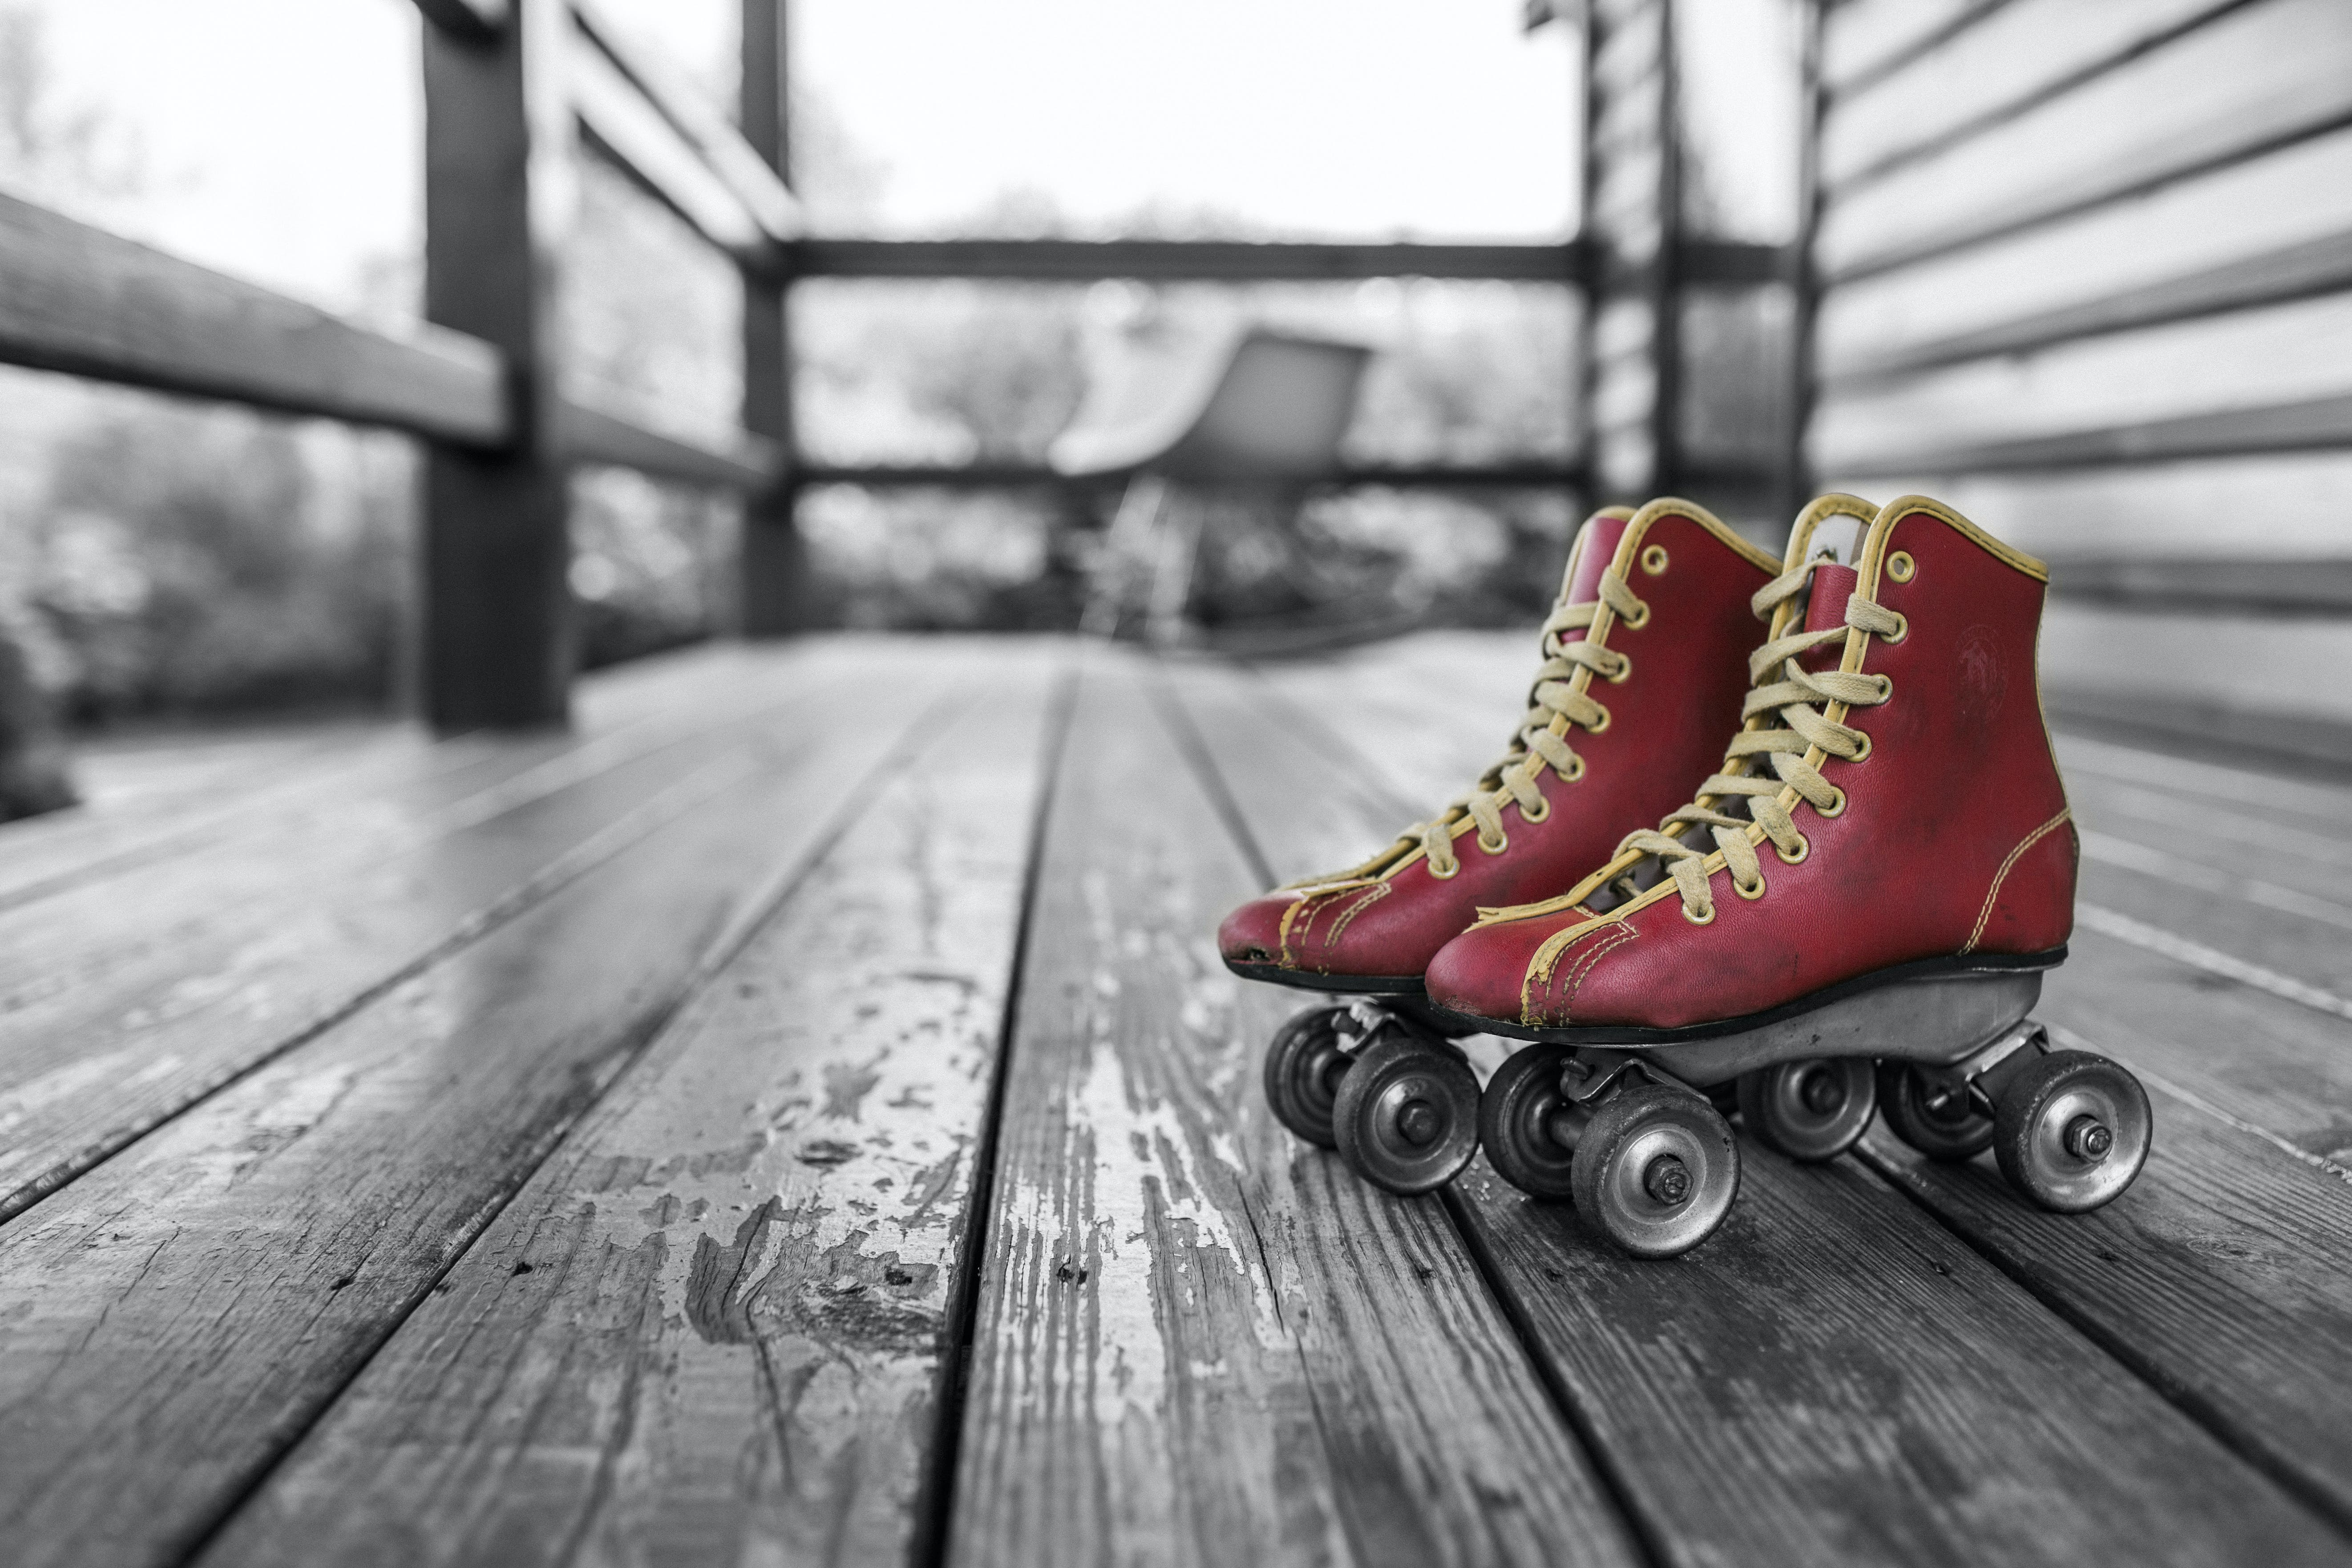 Selective Color Photography of Red Rolling Skates